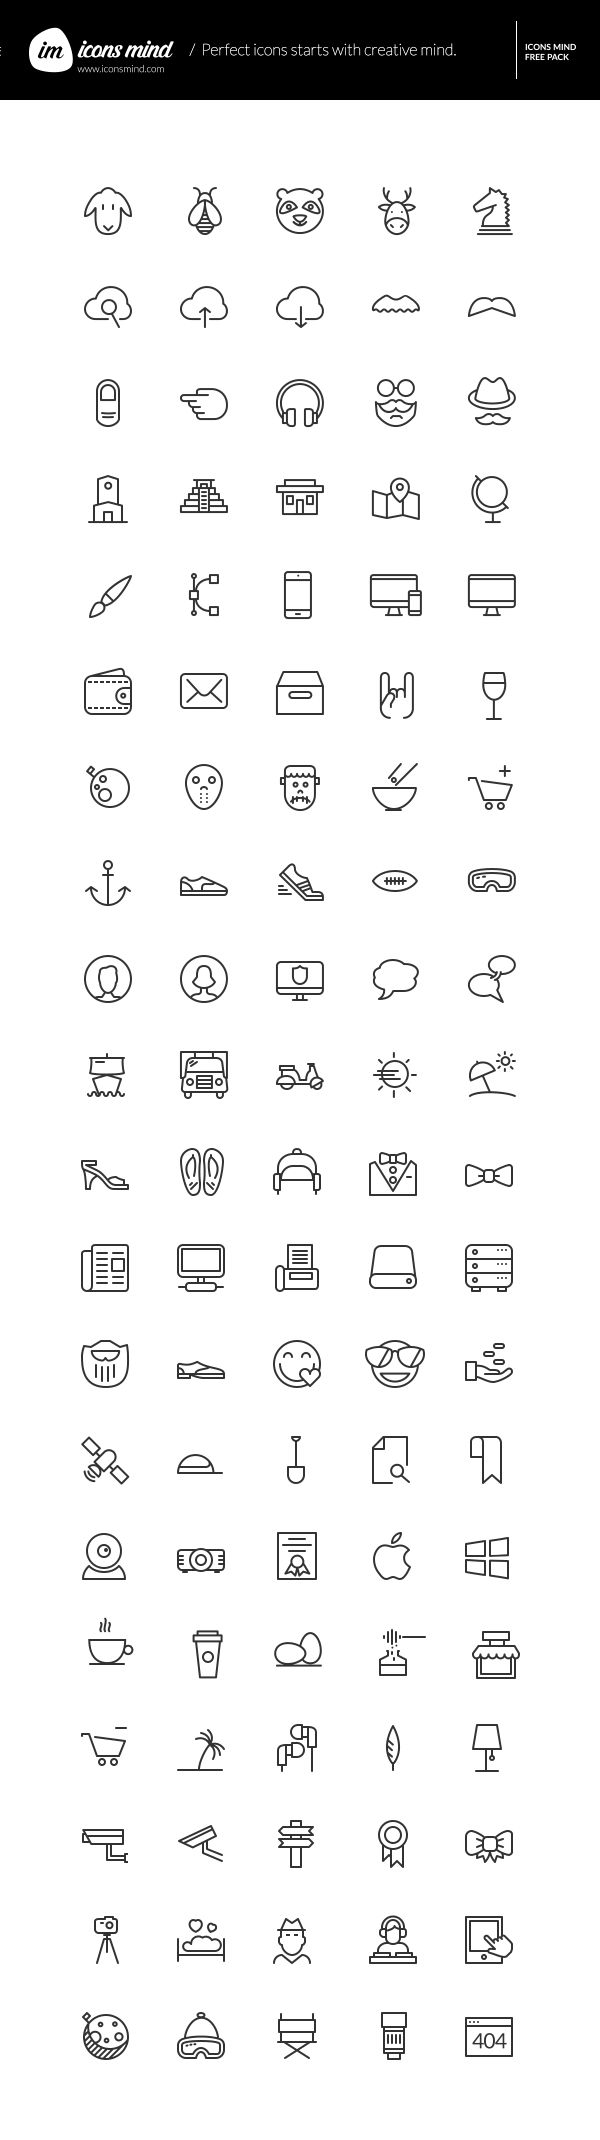 Free Icons Mind: 100 Free Vector Icons